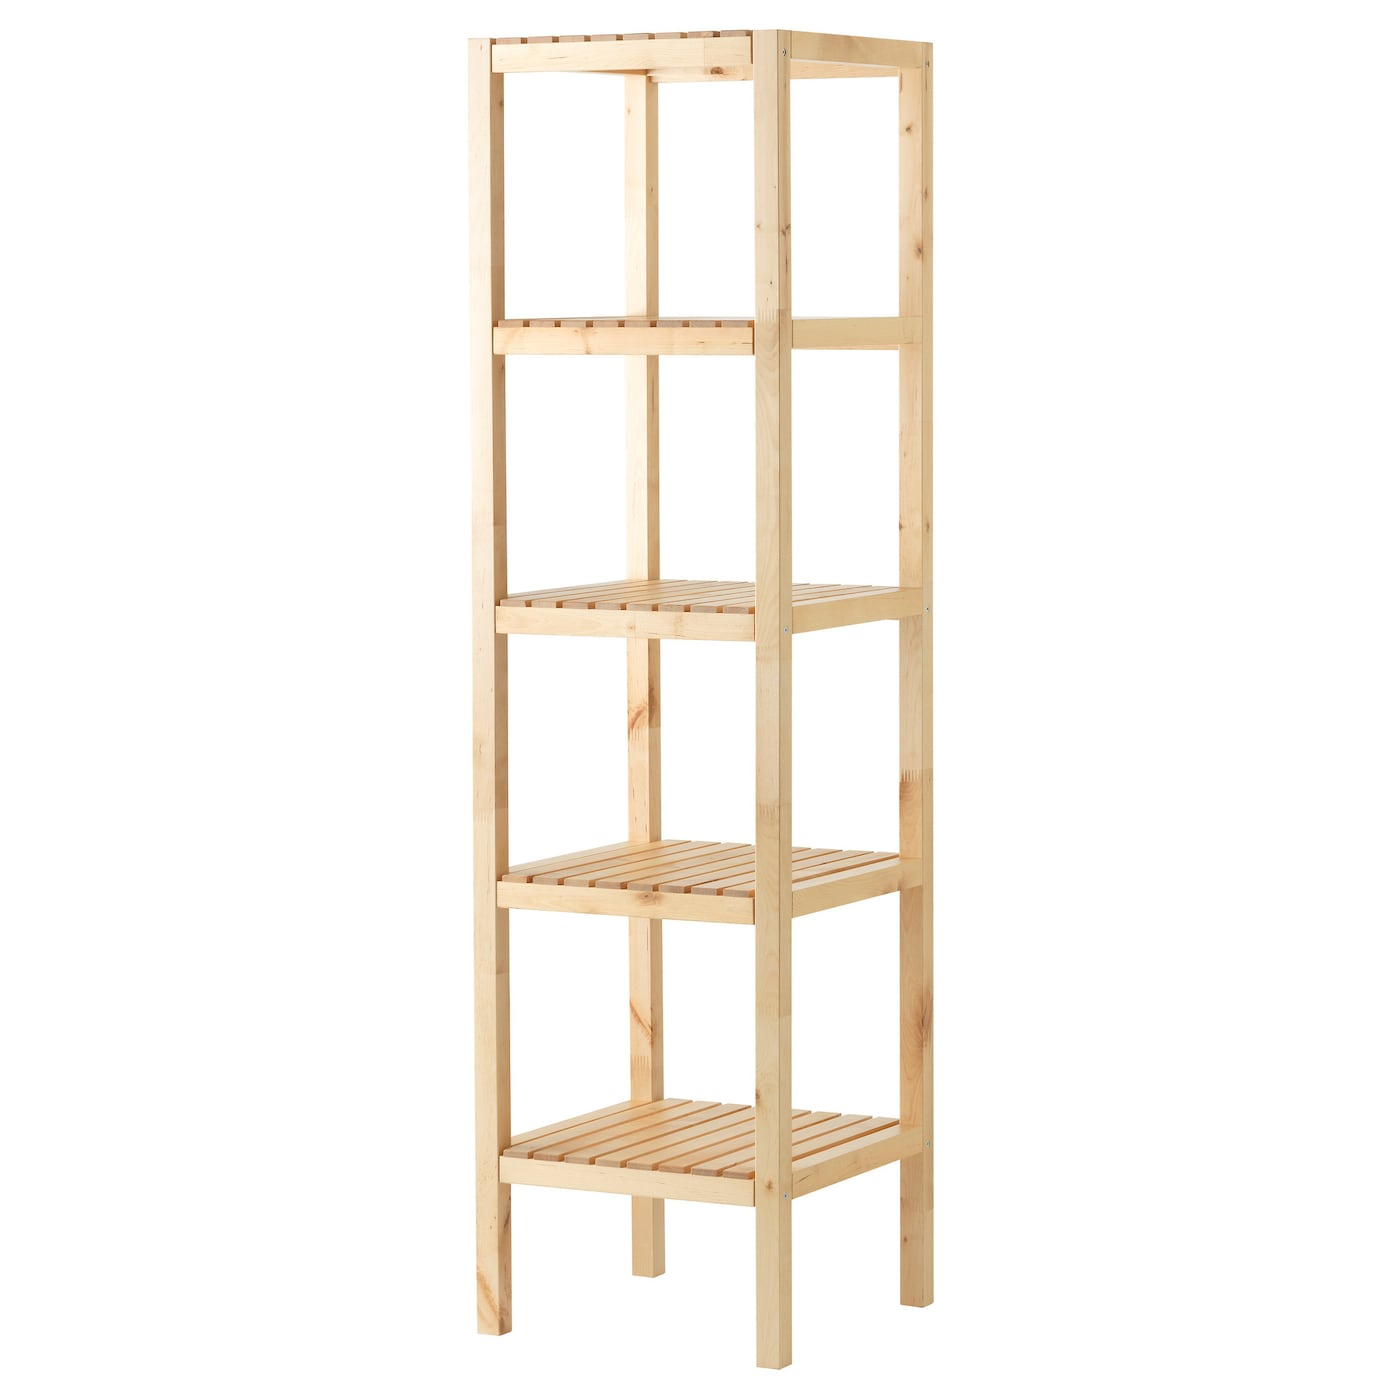 IKEA MOLGER shelving unit The open shelves give an easy overview and easy reach.